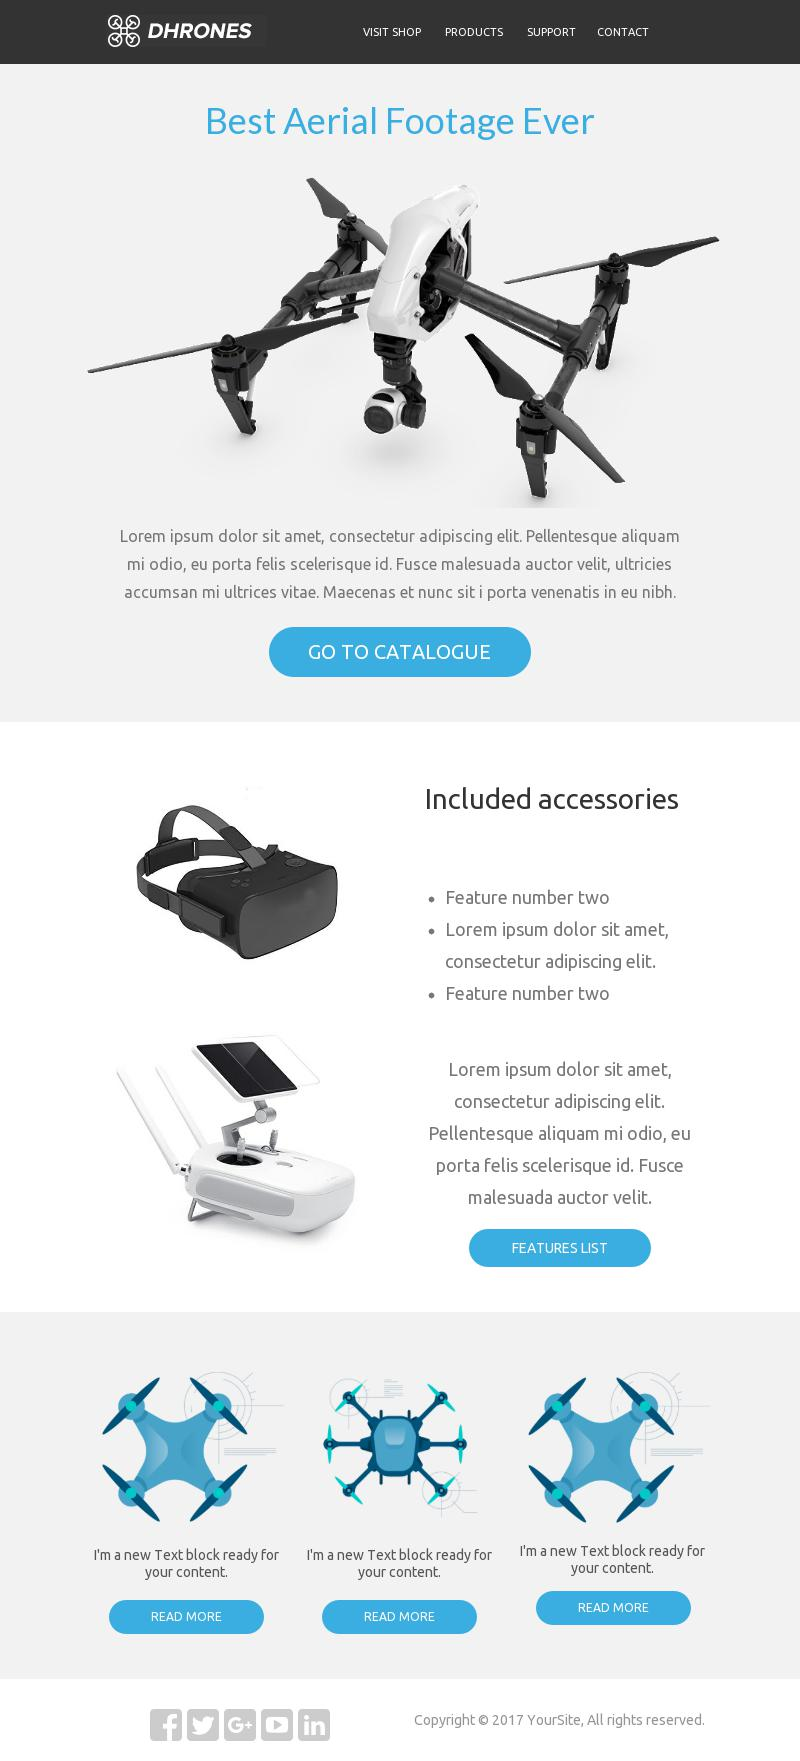 Product Launch Product Launch Email Template For Travel Leisure